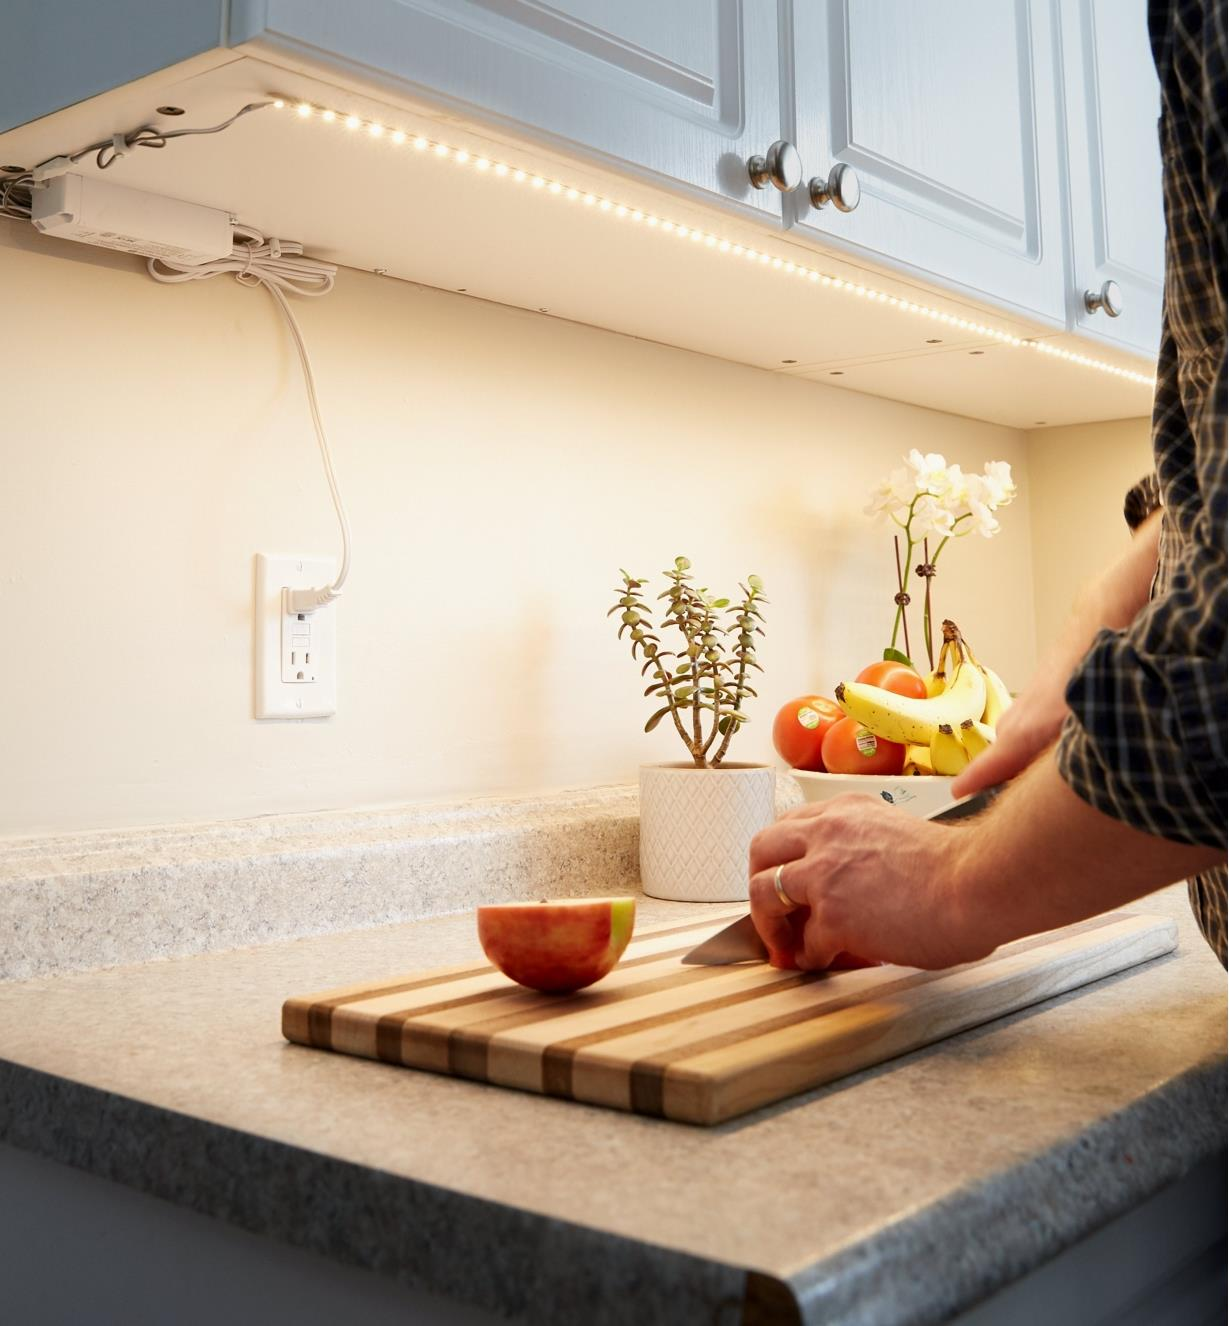 A plug-in LED tape lighting kit mounted under kitchen cupboards to light a countertop